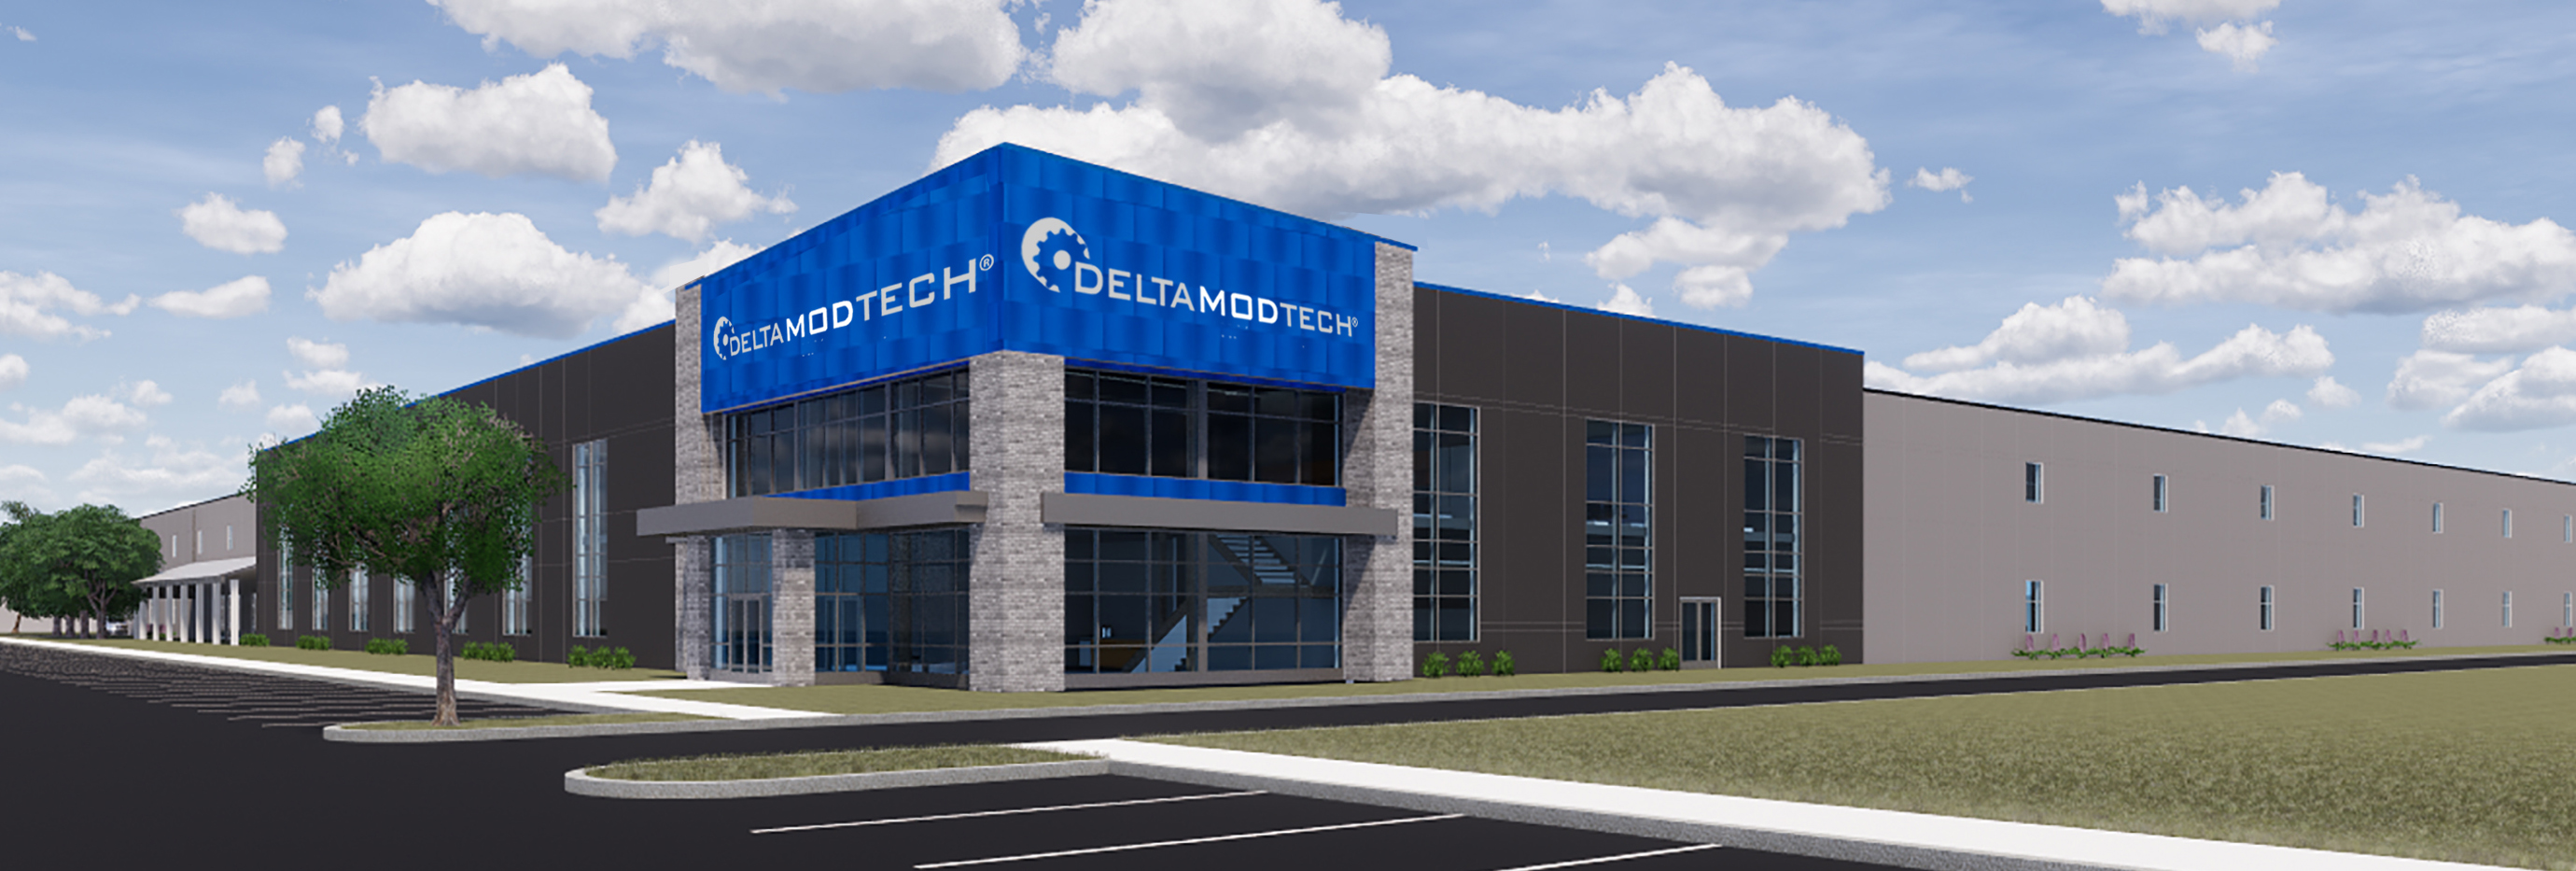 Construction continues on Delta ModTech expansion Main Photo